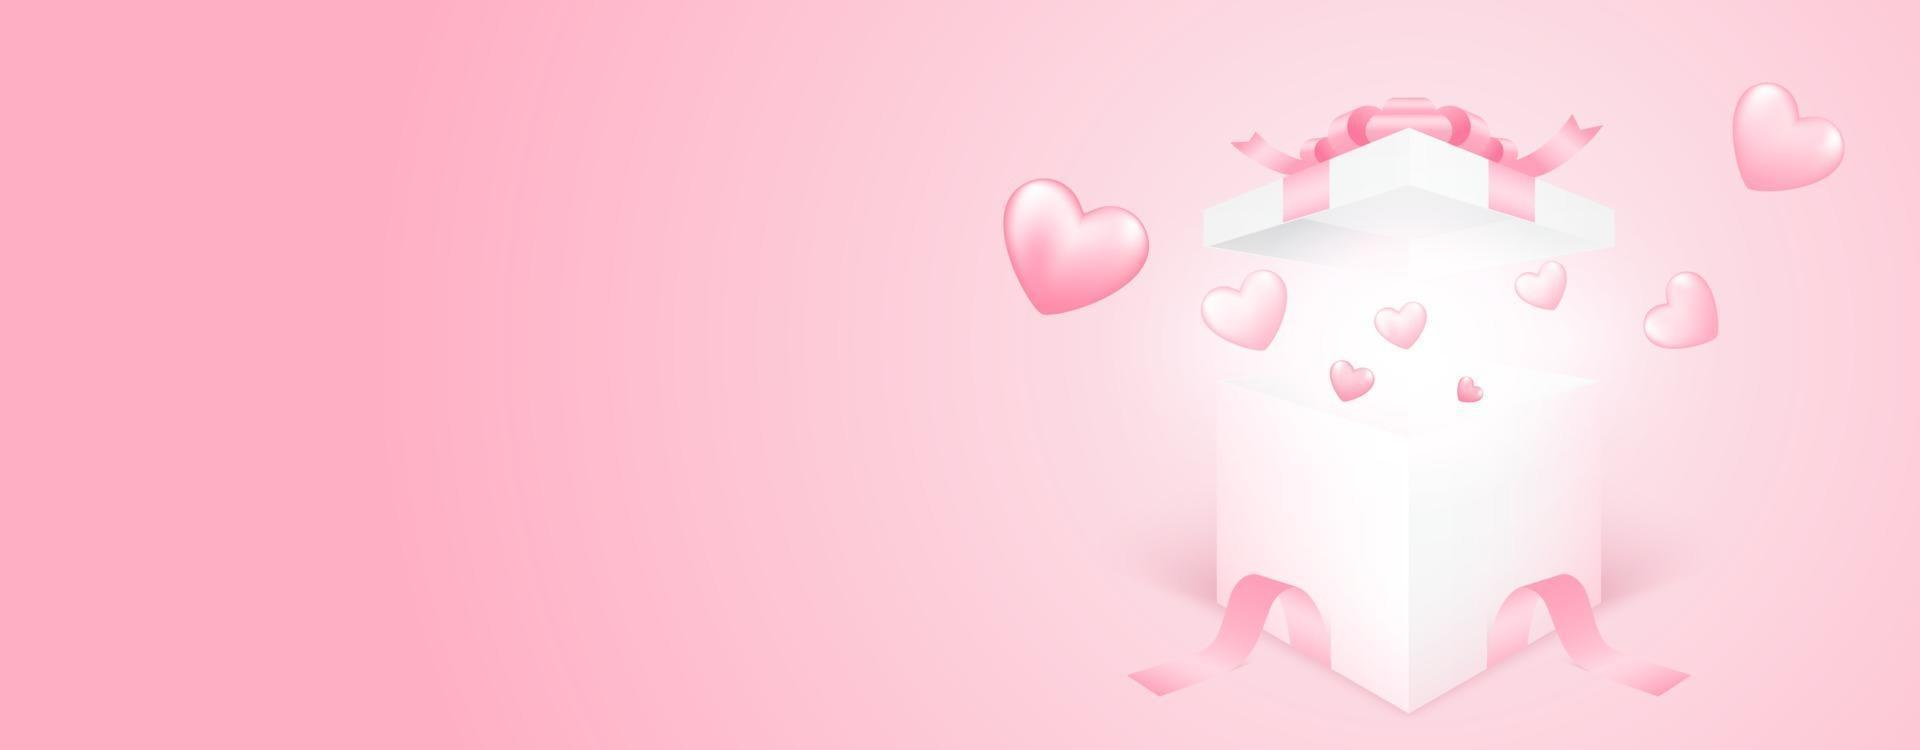 3D gift box with heart flying on pink banner background. Love concept design for happy mother's day, valentine's day, birthday day. Paper art illustration. vector